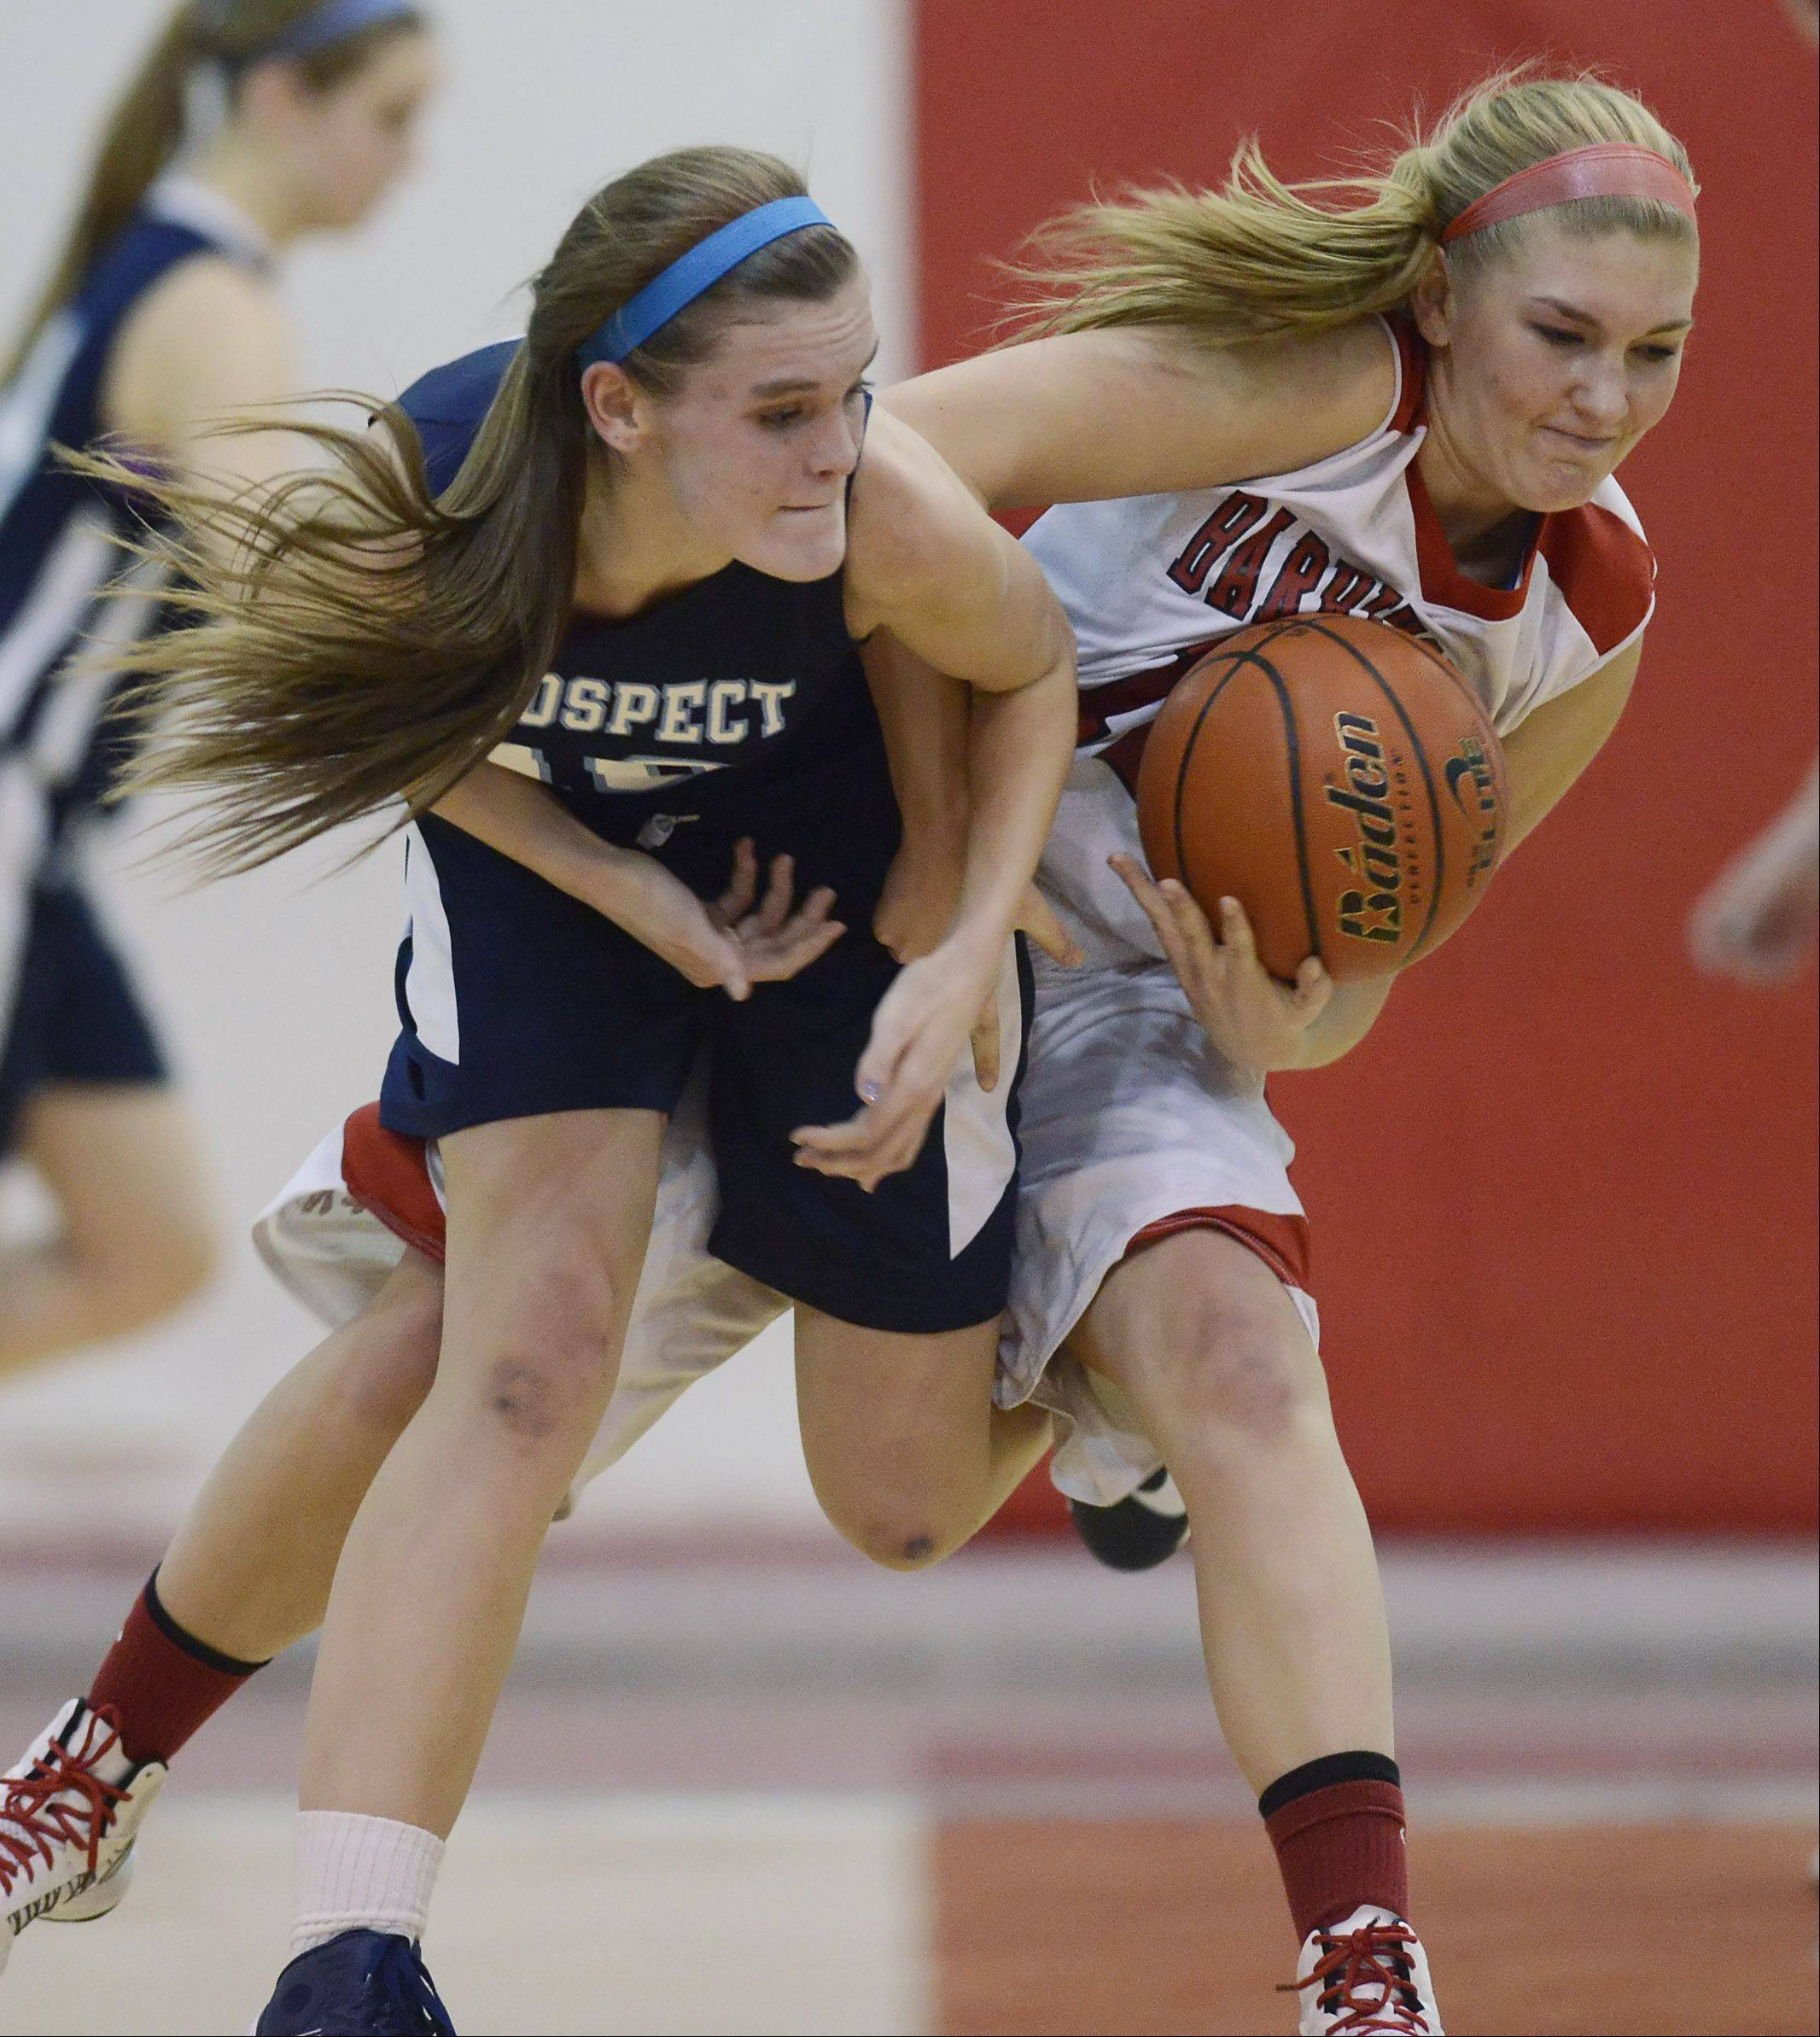 Barrington's Maddie Bartz, right, takes the ball from Prospect's Taylor Will during Tuesday's game.